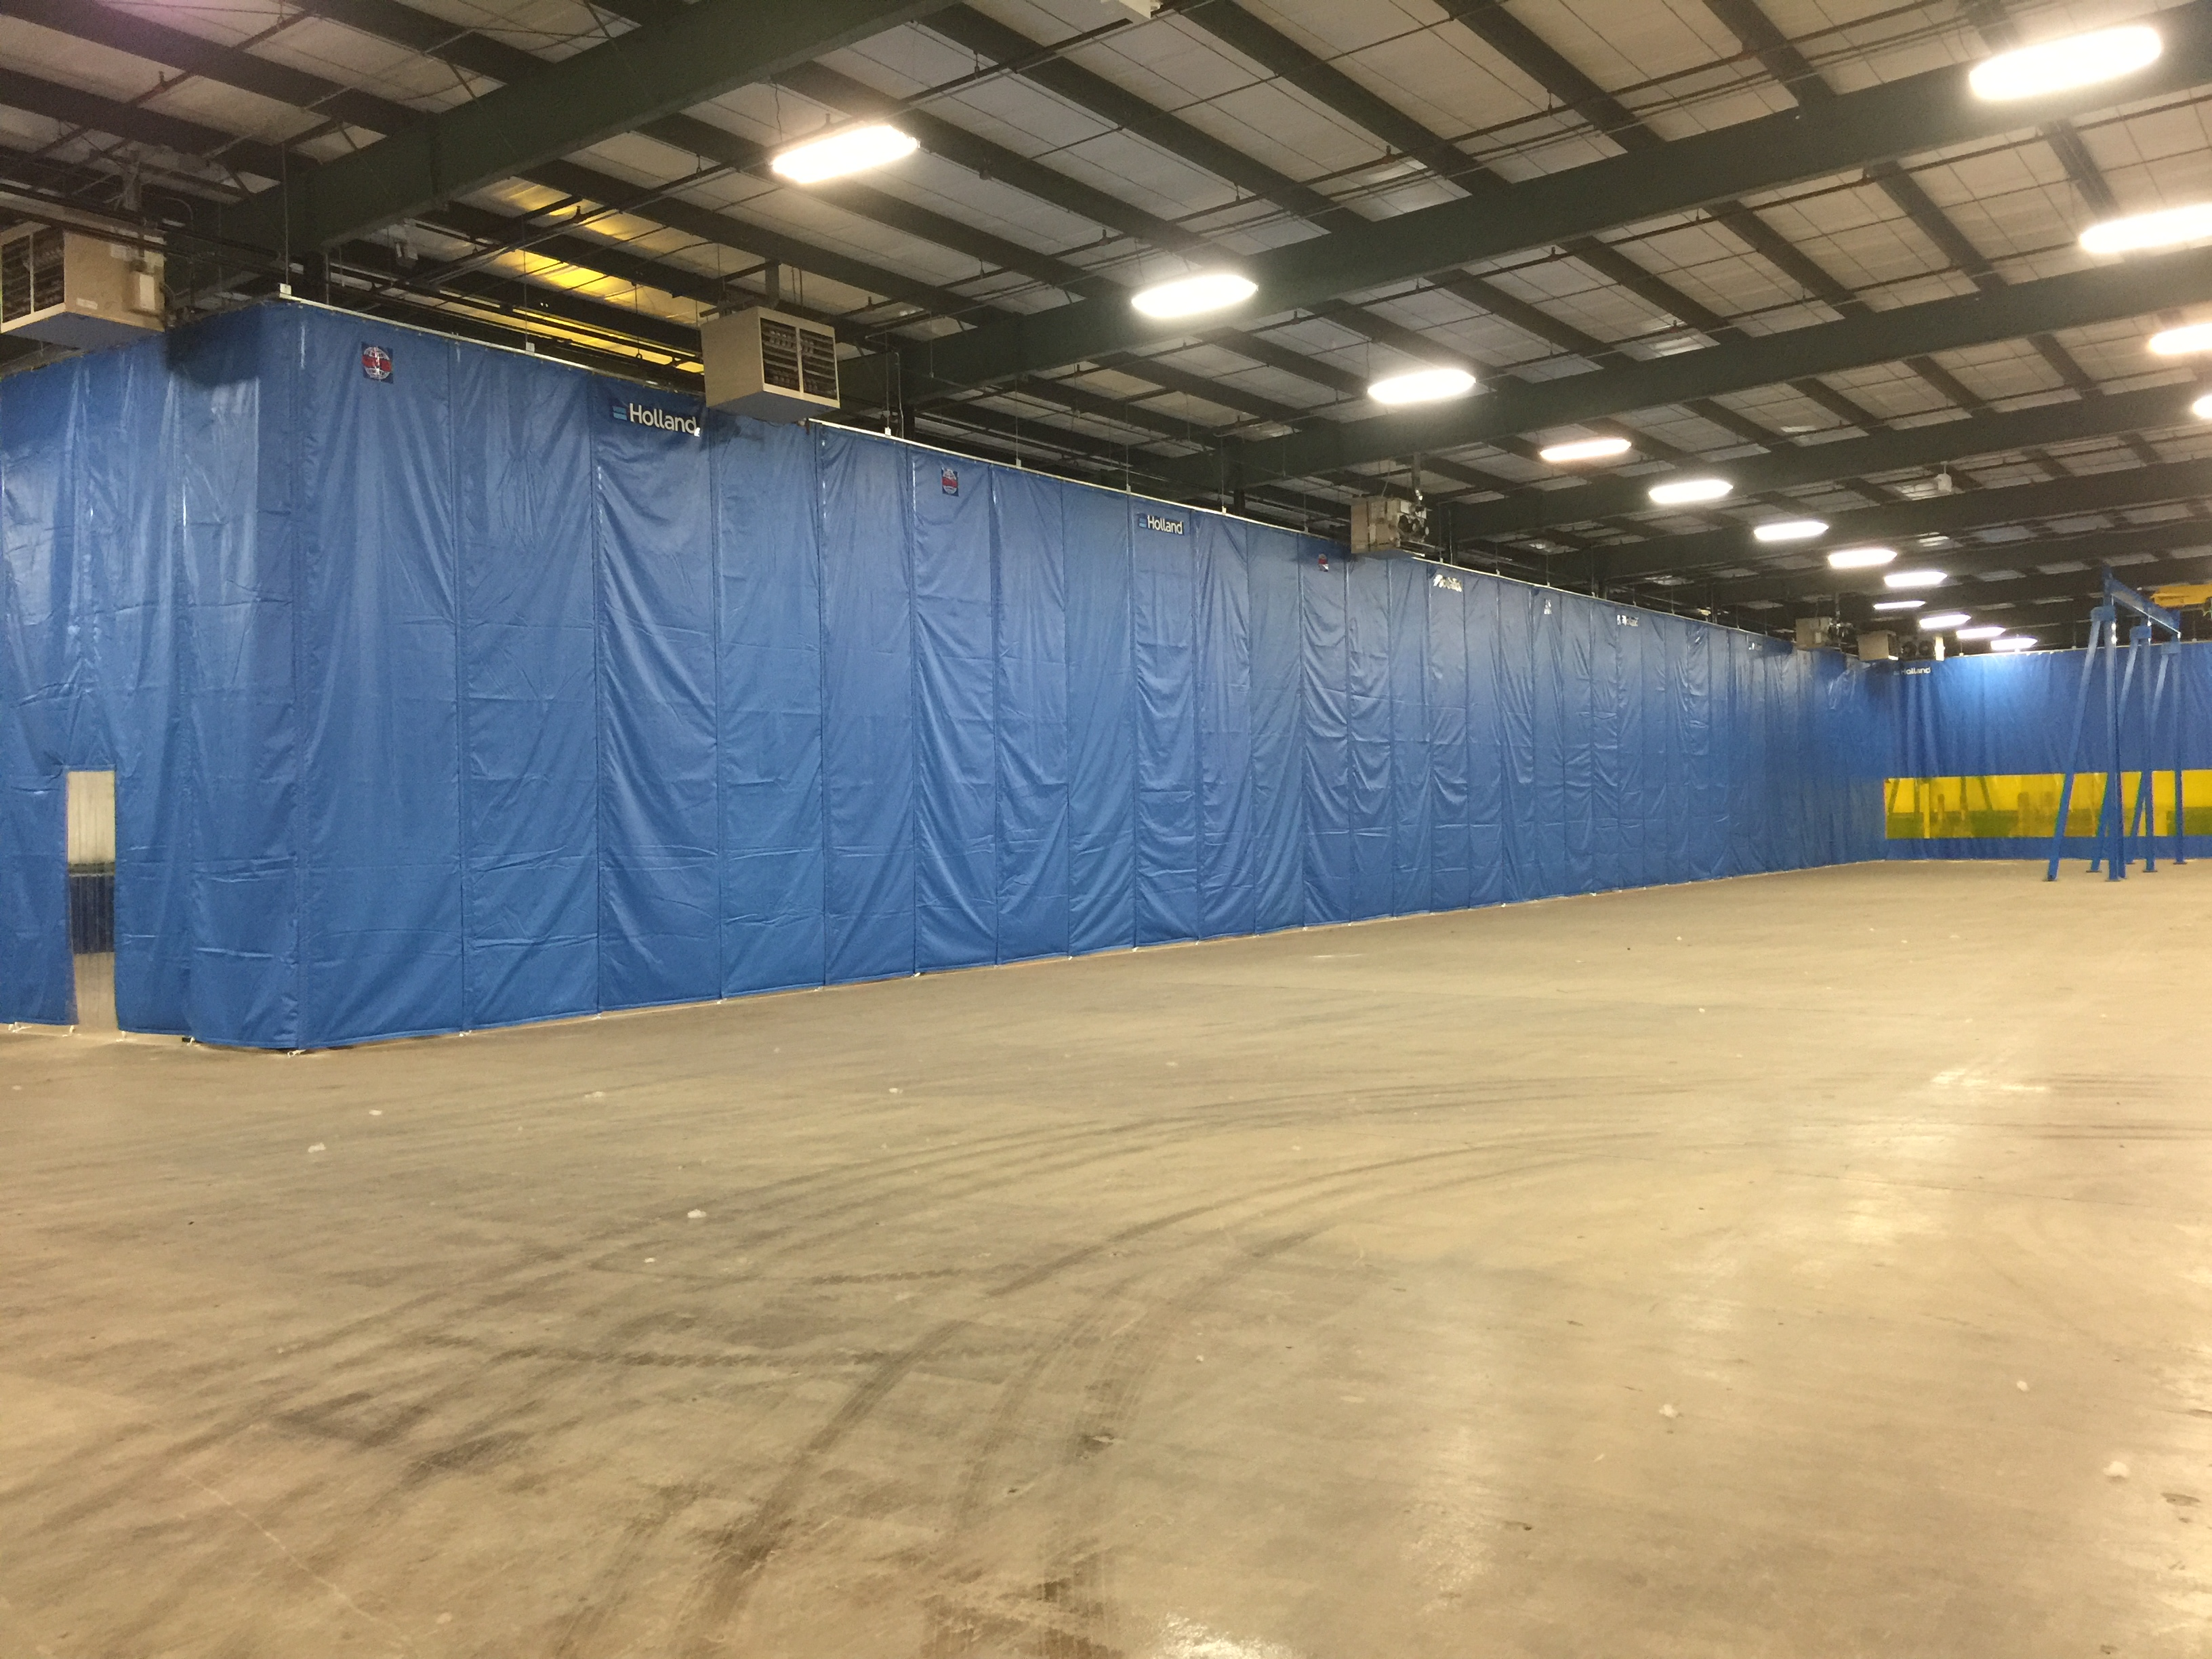 Industrial Insulated Curtains Allow the Flexibility to Create Large Freezer to Freezer Temperature Separation